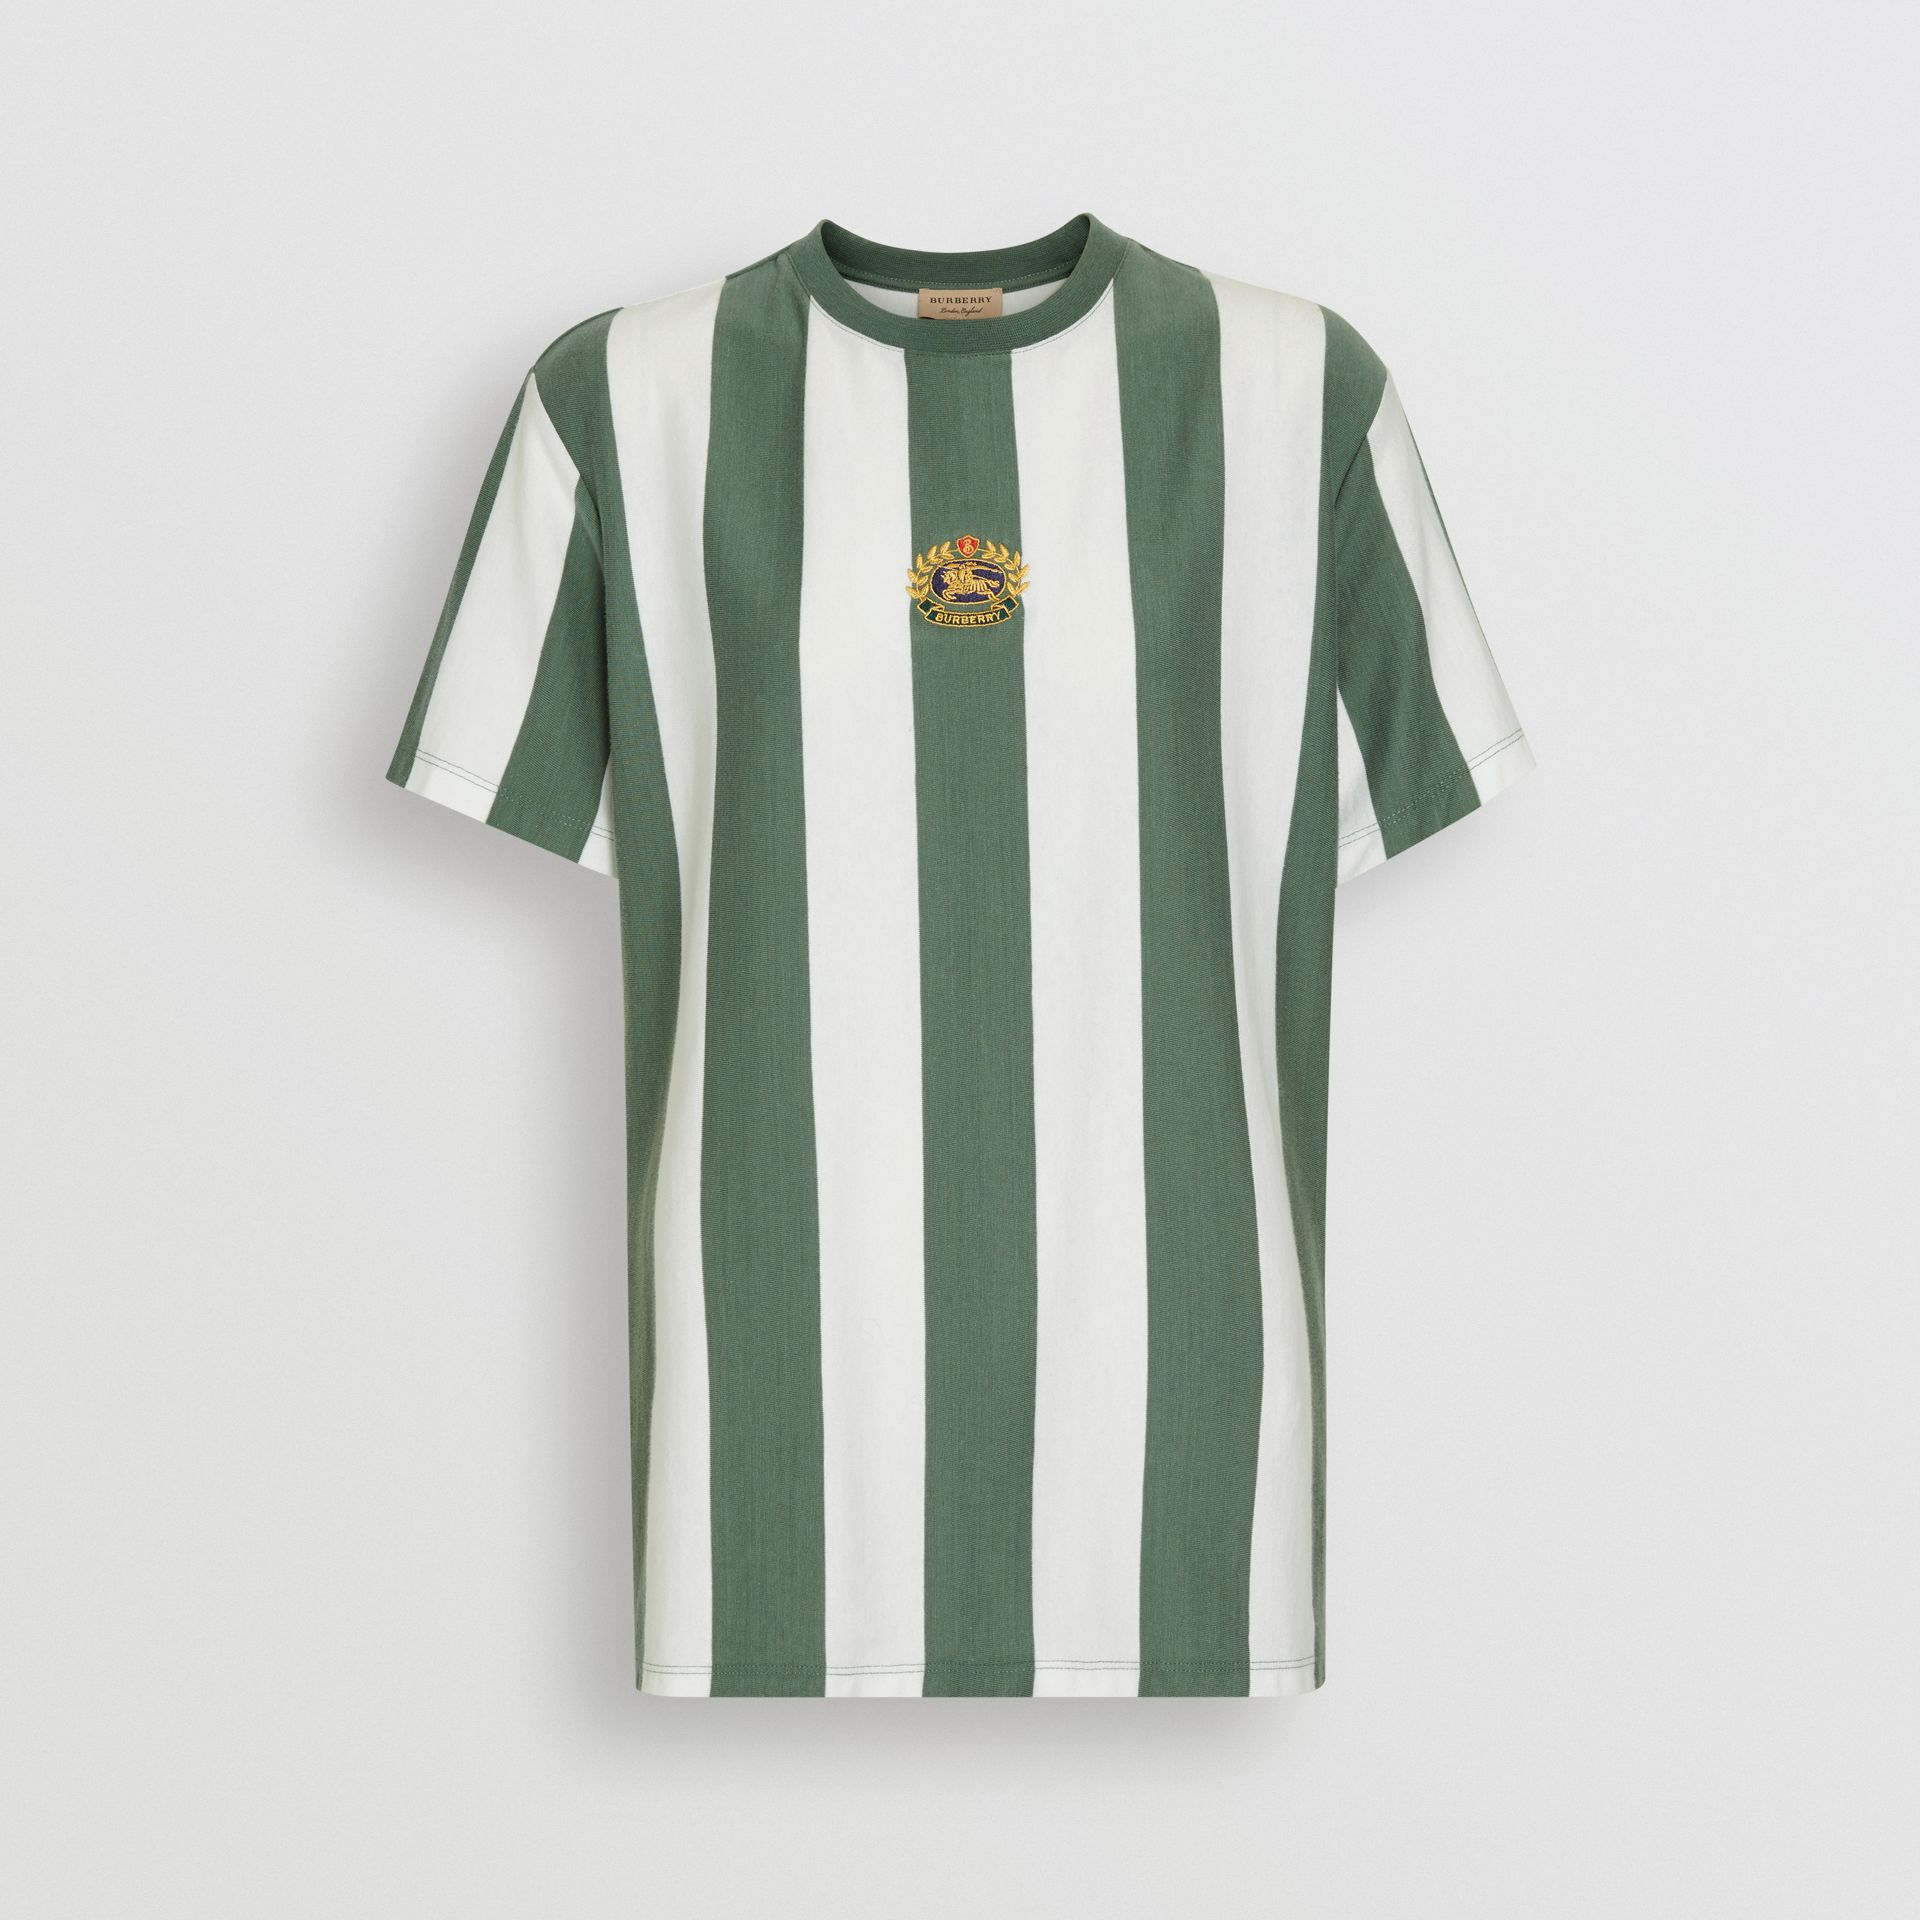 Embroidered Crest Striped Cotton T-shirt in Forest Green - Women | Burberry United Kingdom - gallery image 3